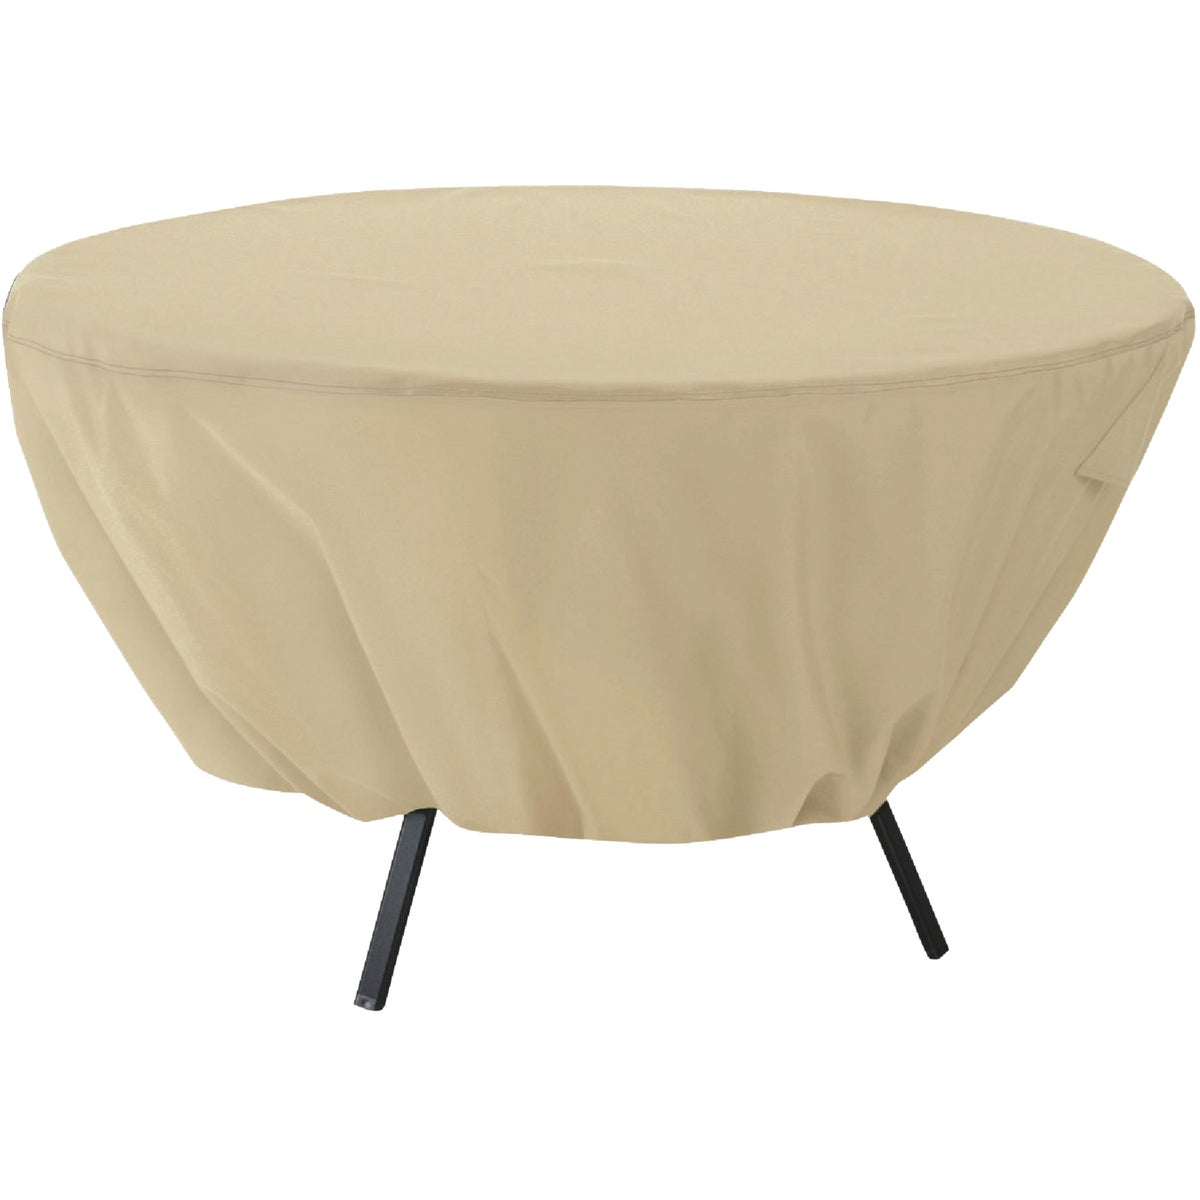 RND TERRAZZ PATIO TABLE